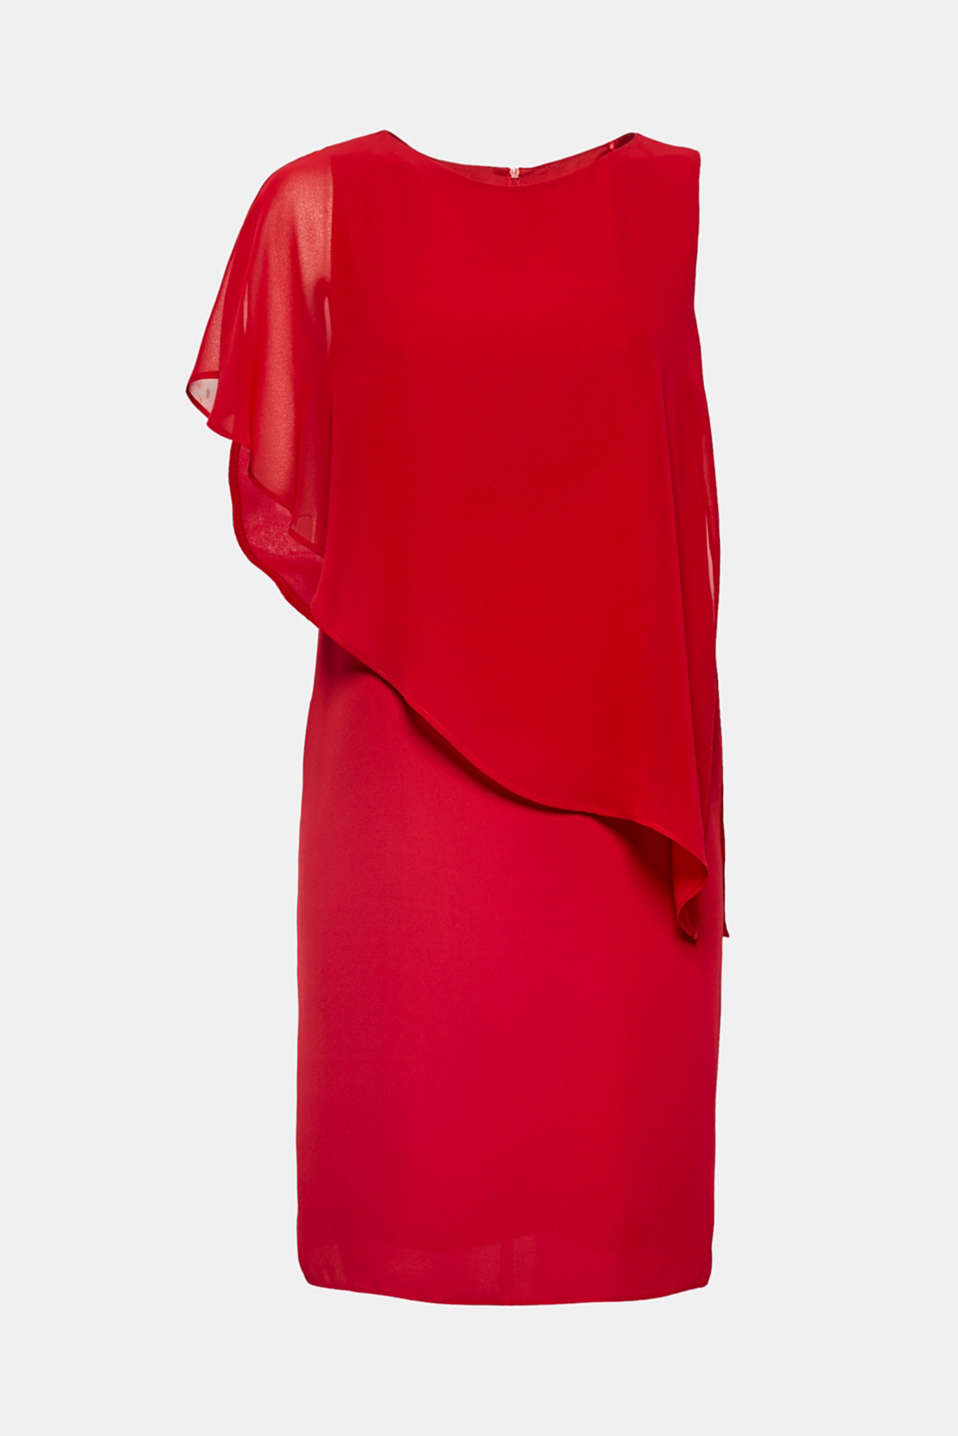 The chiffon layer envelops this softly draped dress in a one-shoulder design like a cape!